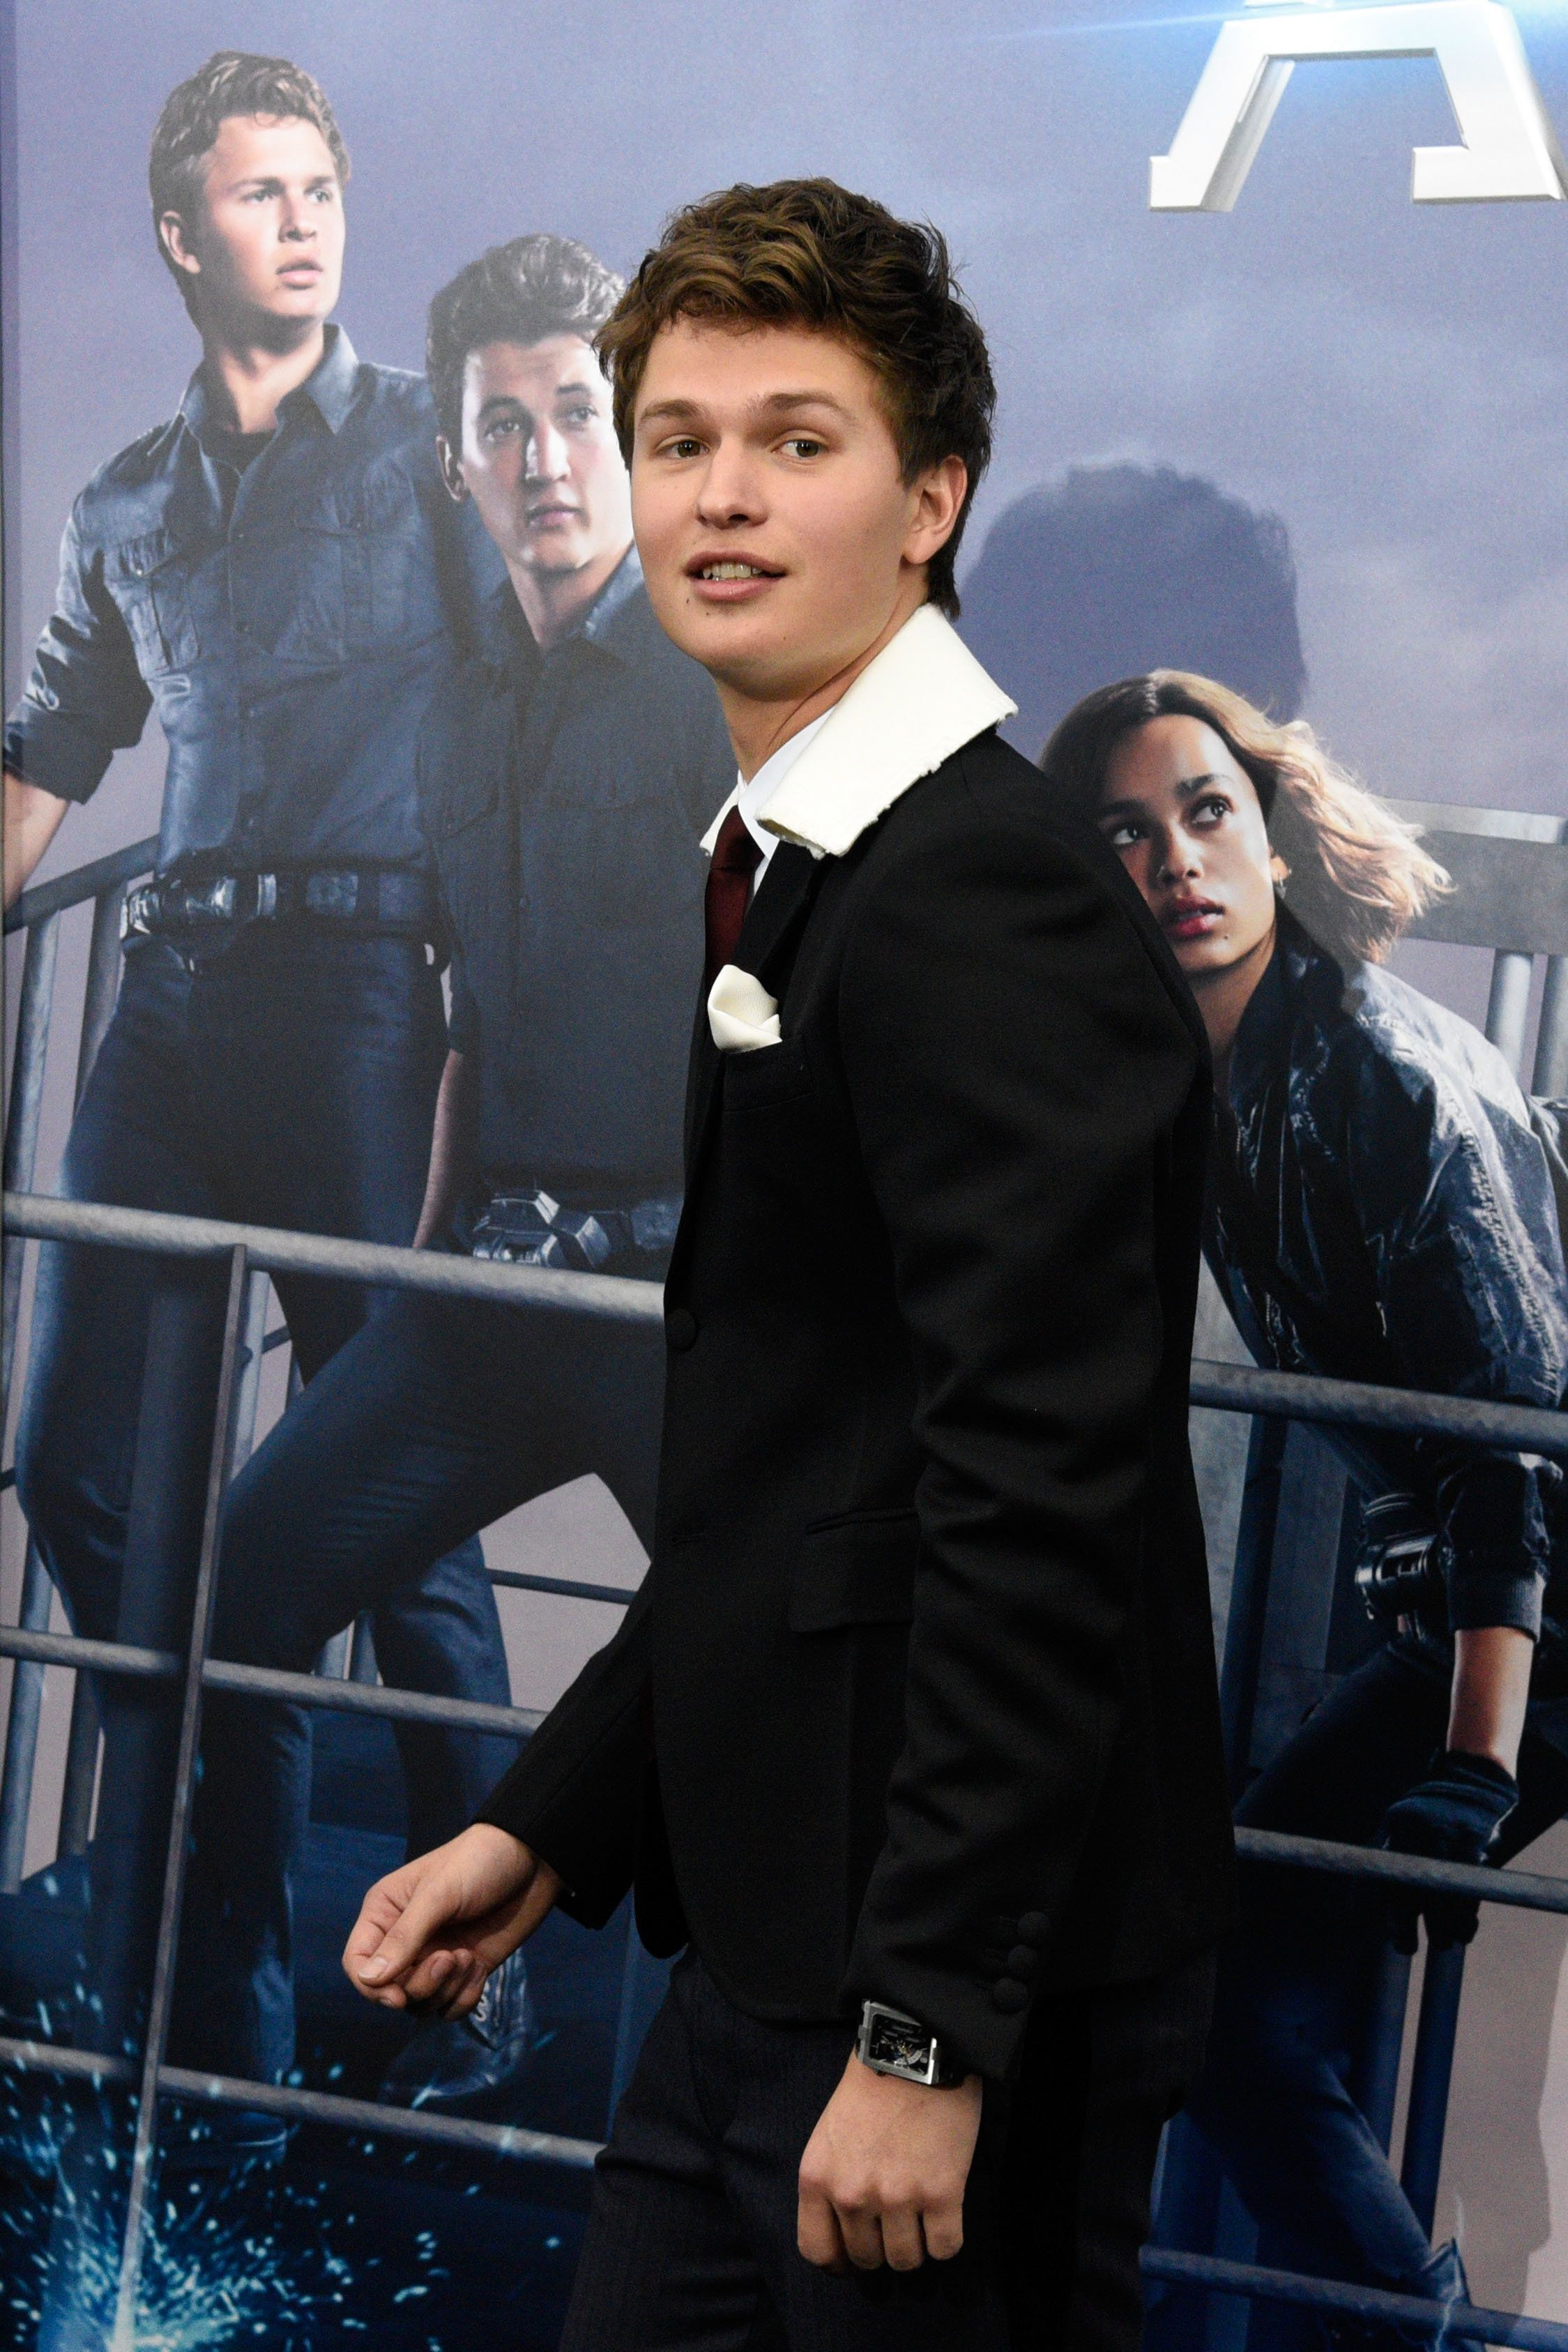 NEW YORK, NY - MARCH 14:  Ansel Elgort attends the 'Allegiant' premiere at AMC Loews Lincoln Square 13 theater on March 14, 2016 in New York City.  (Photo by Taylor Hill/FilmMagic)